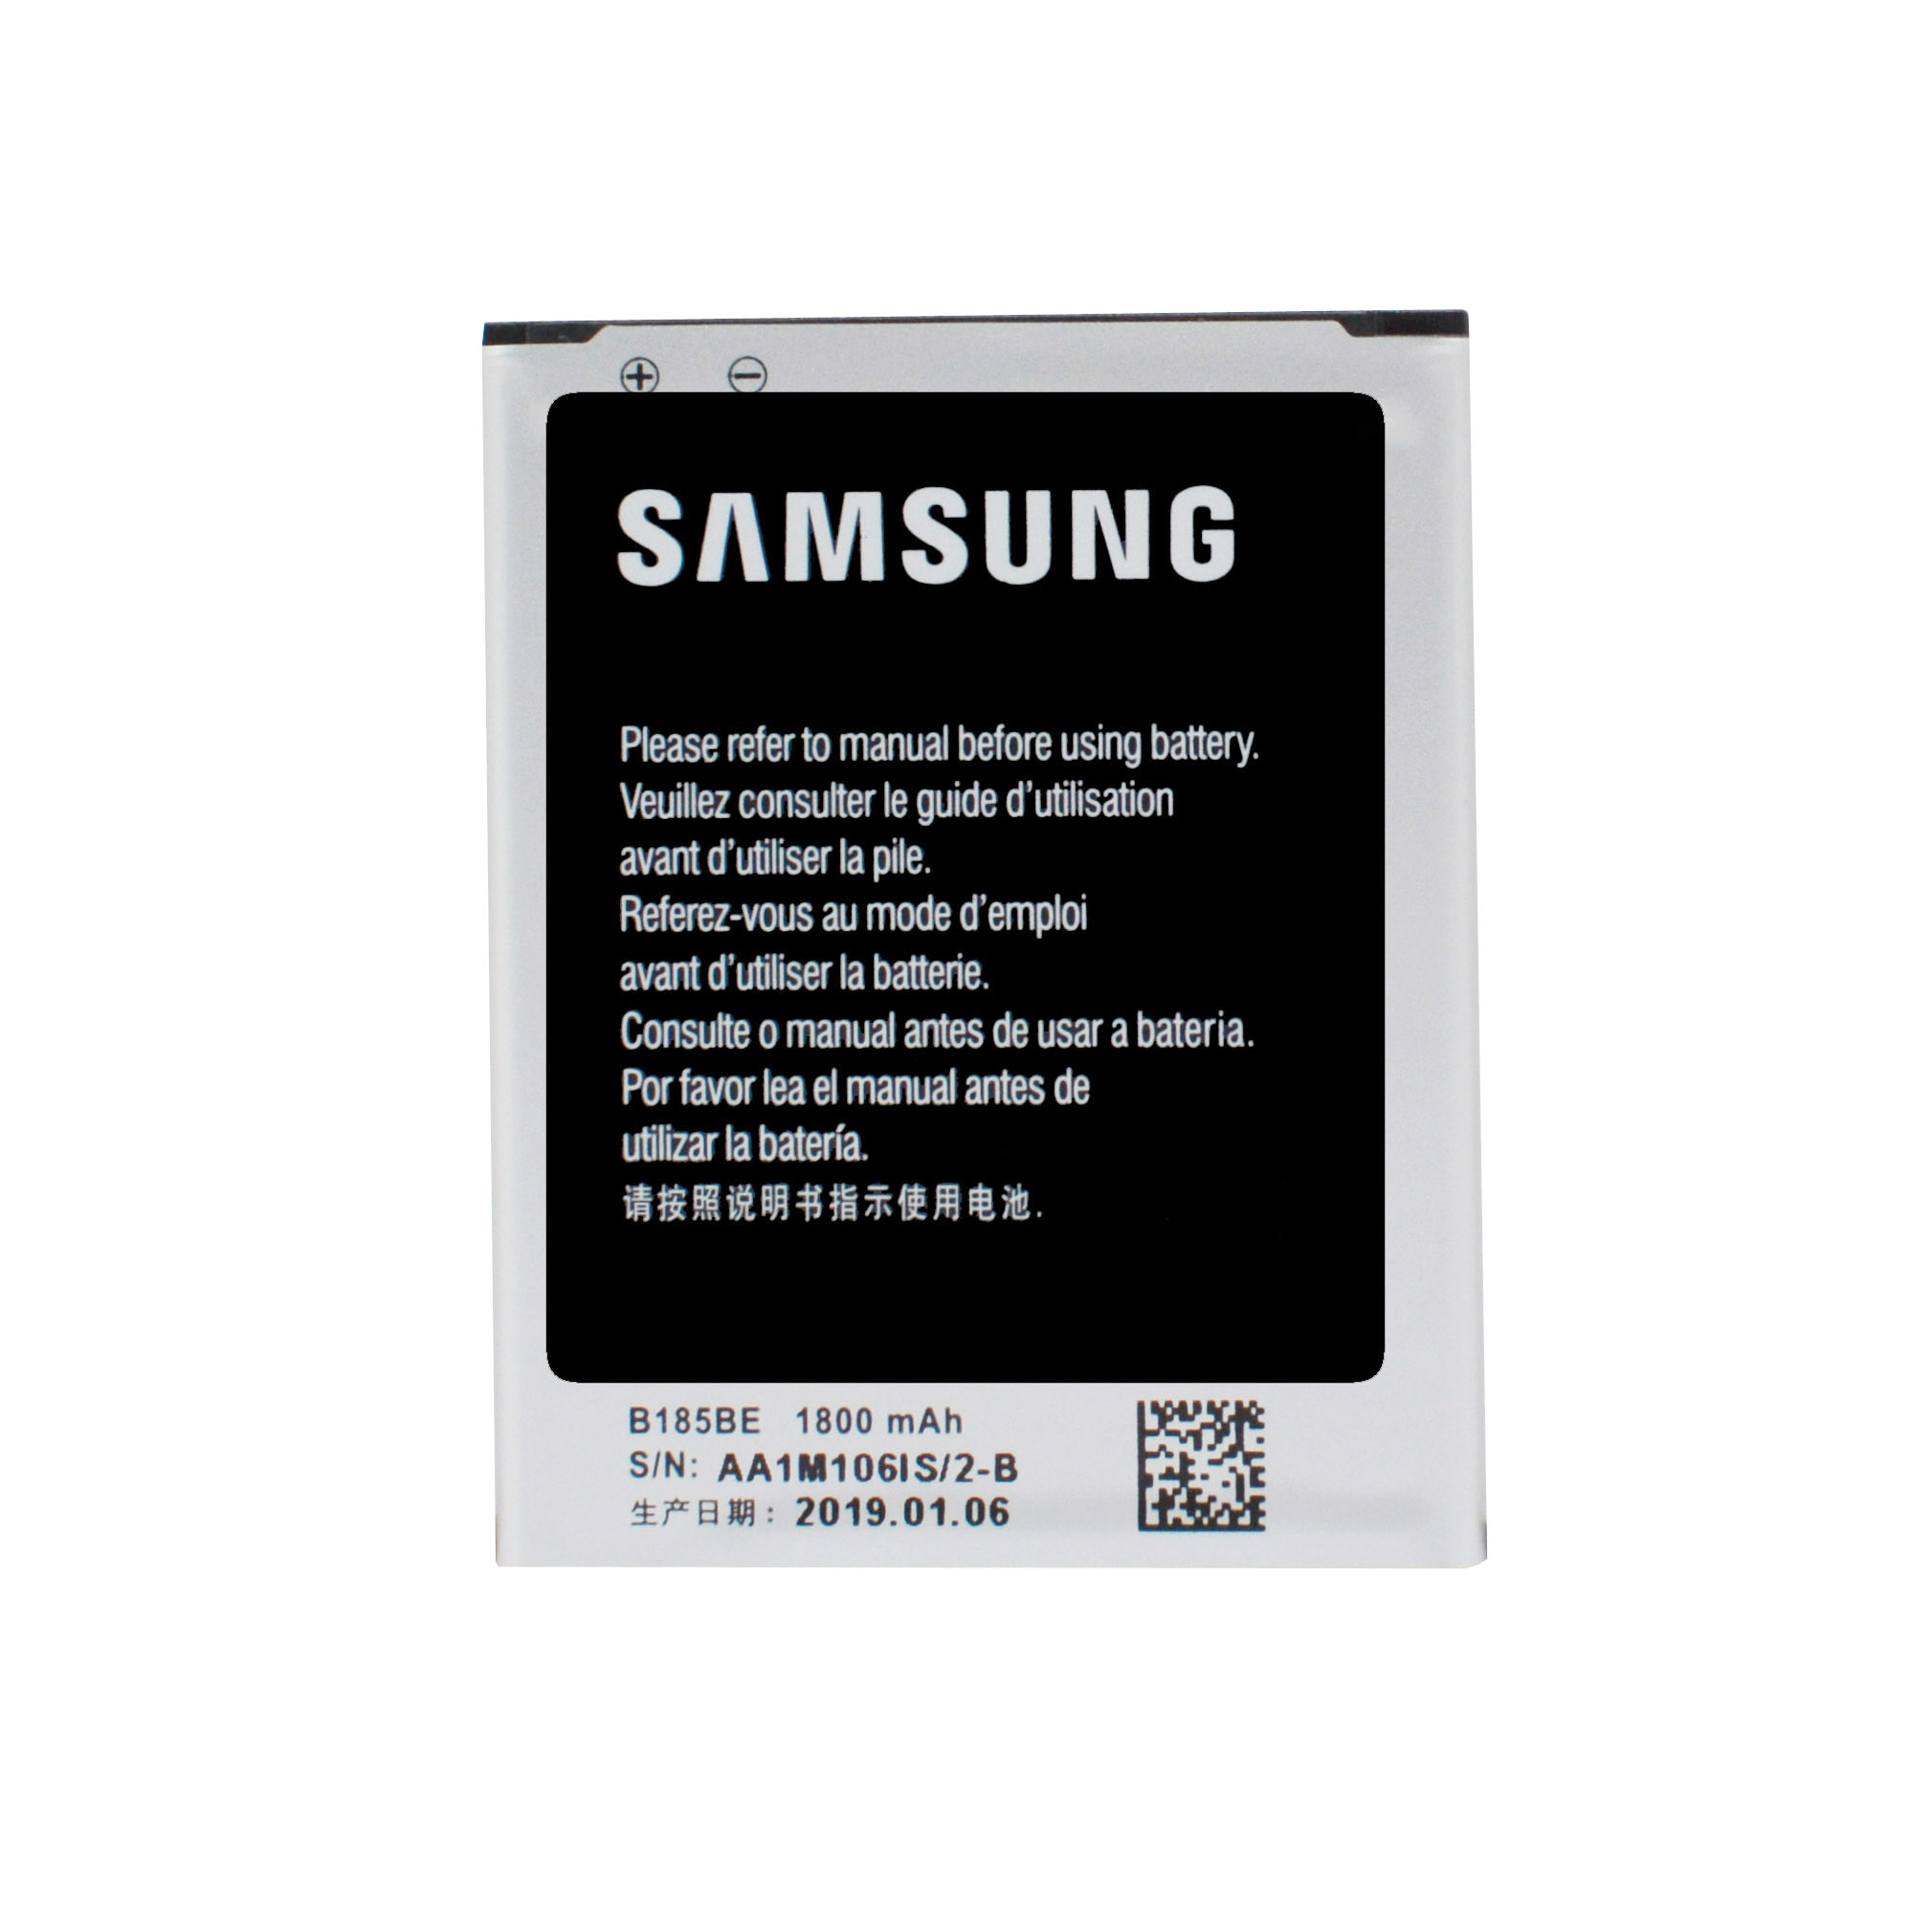 20pcs/lot Battery B185BE For Samsung Galaxy Core Plus SM-G350 G350F Newest Original High quality Replacement batteria 1800mAh enlarge